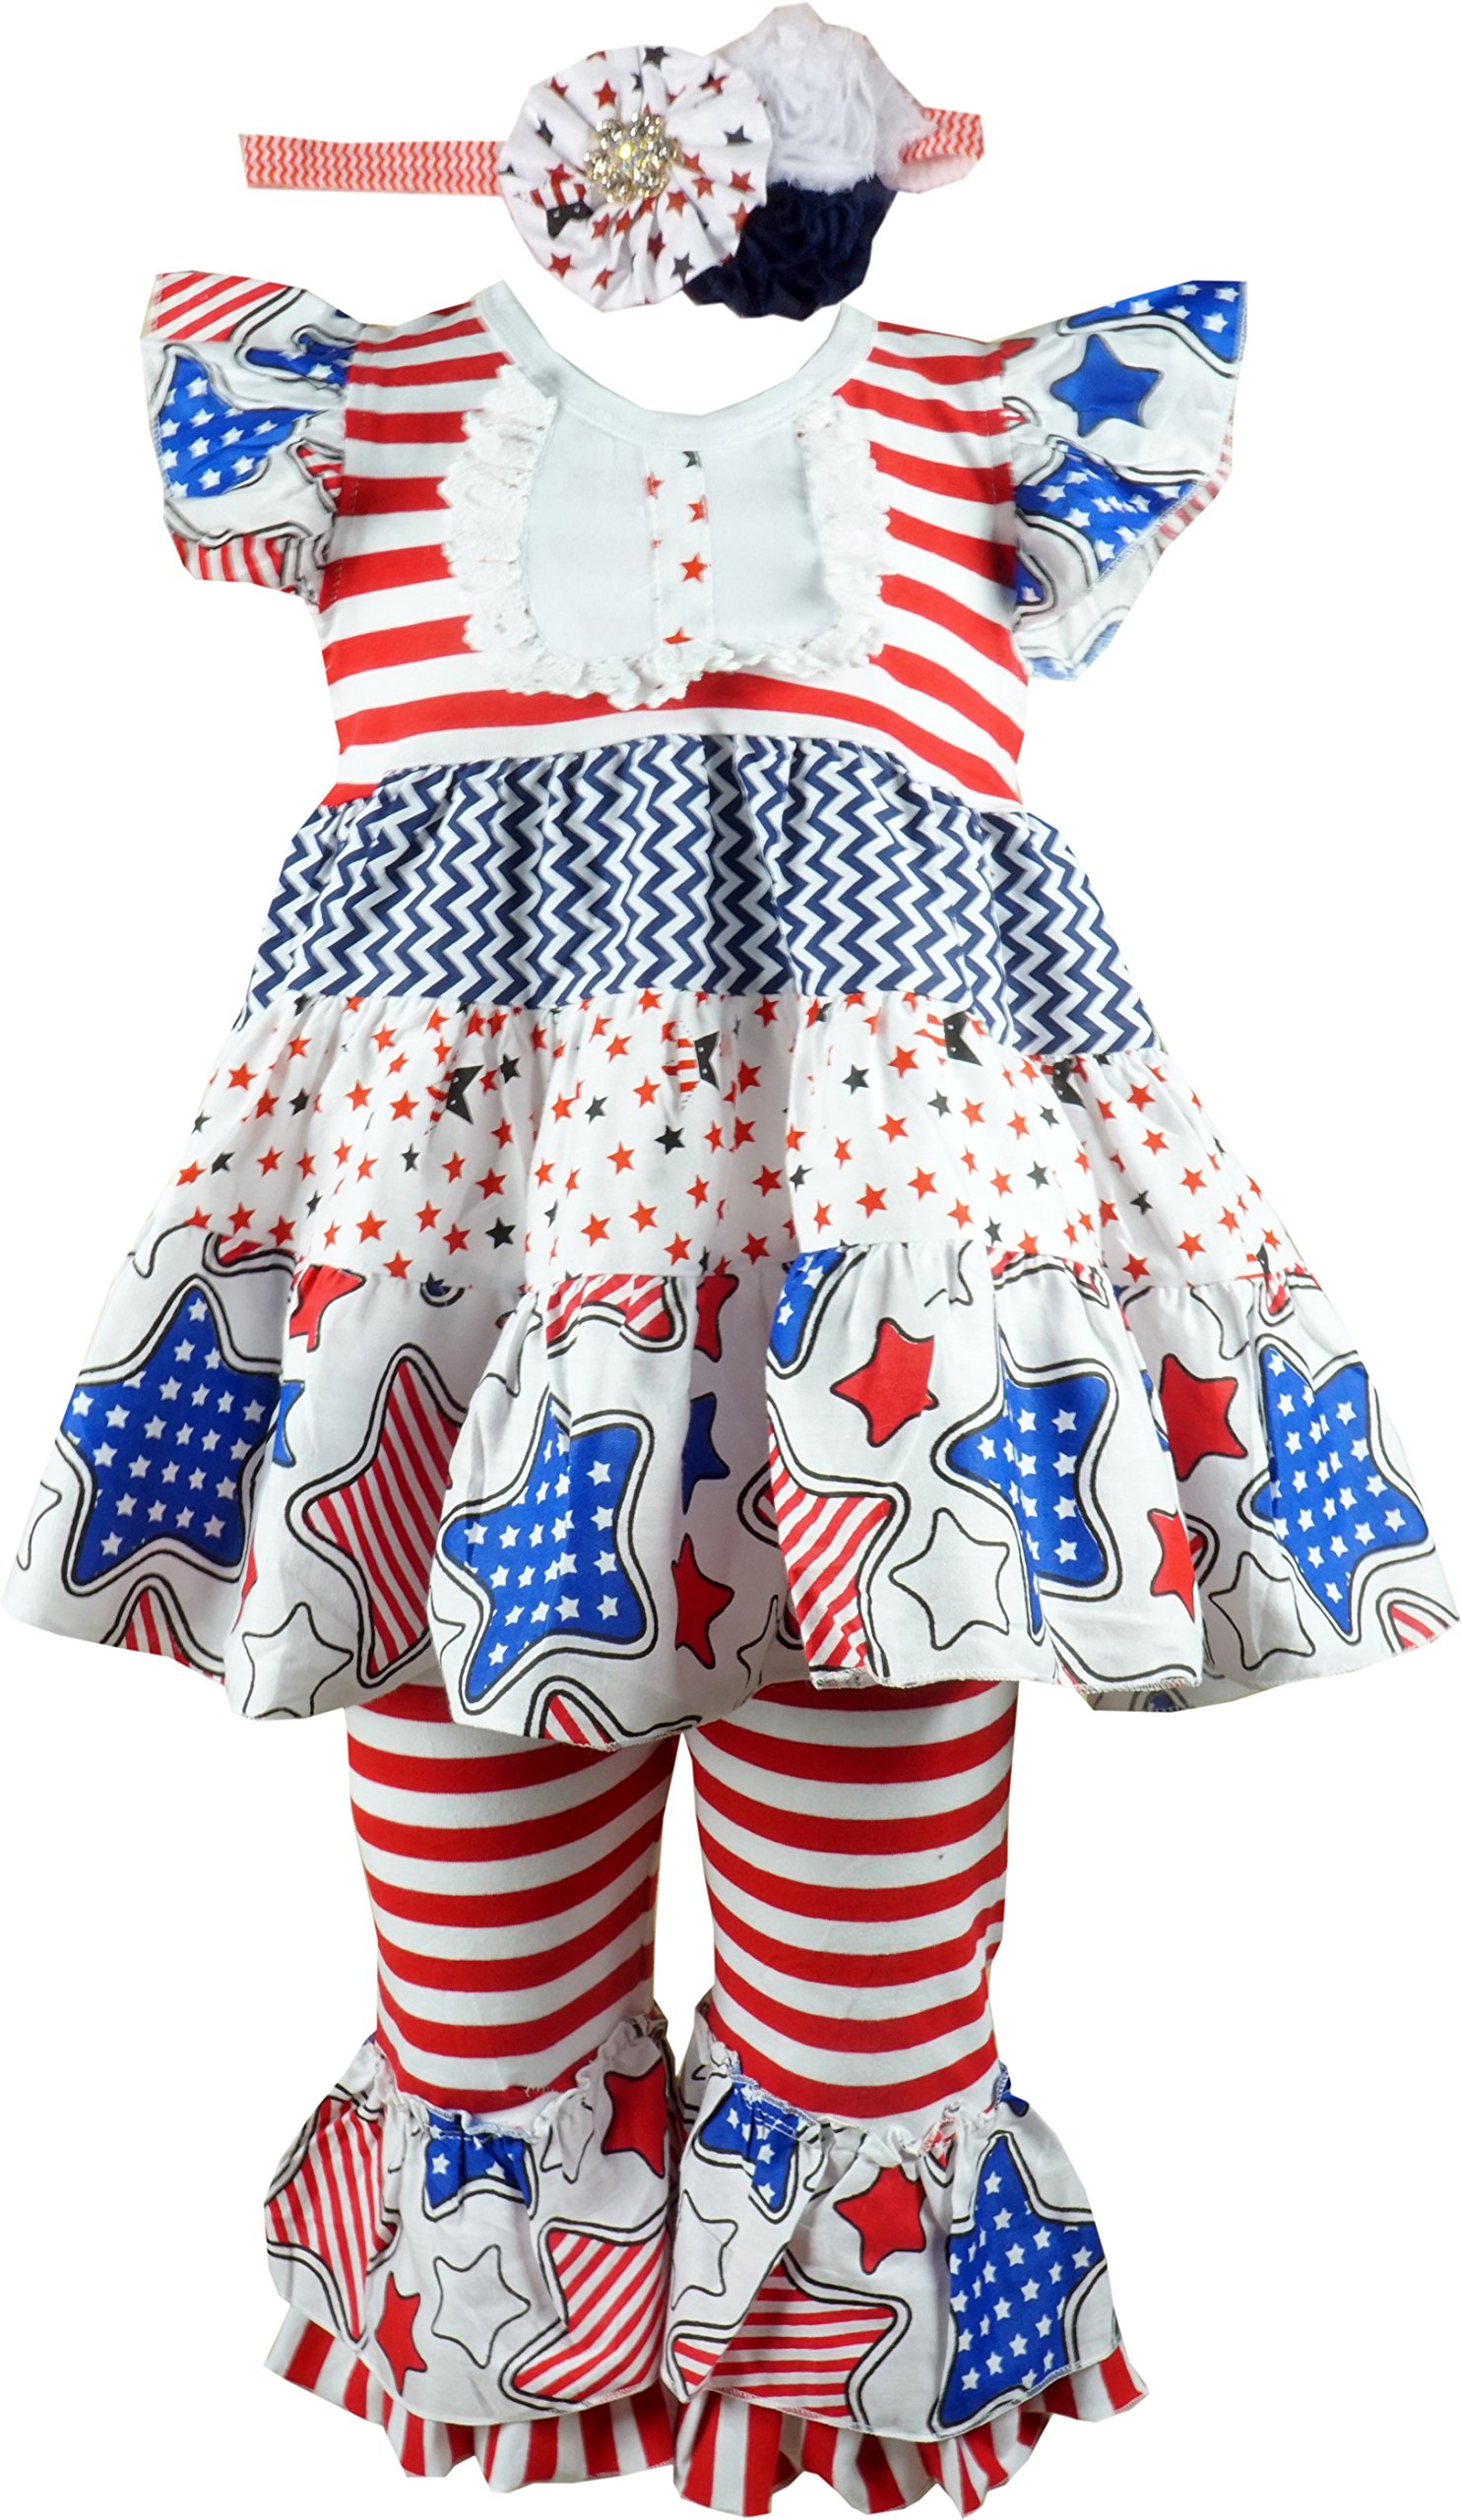 Baby Toddler Little Girls Americana Patriotic Stars Clothing Set 6